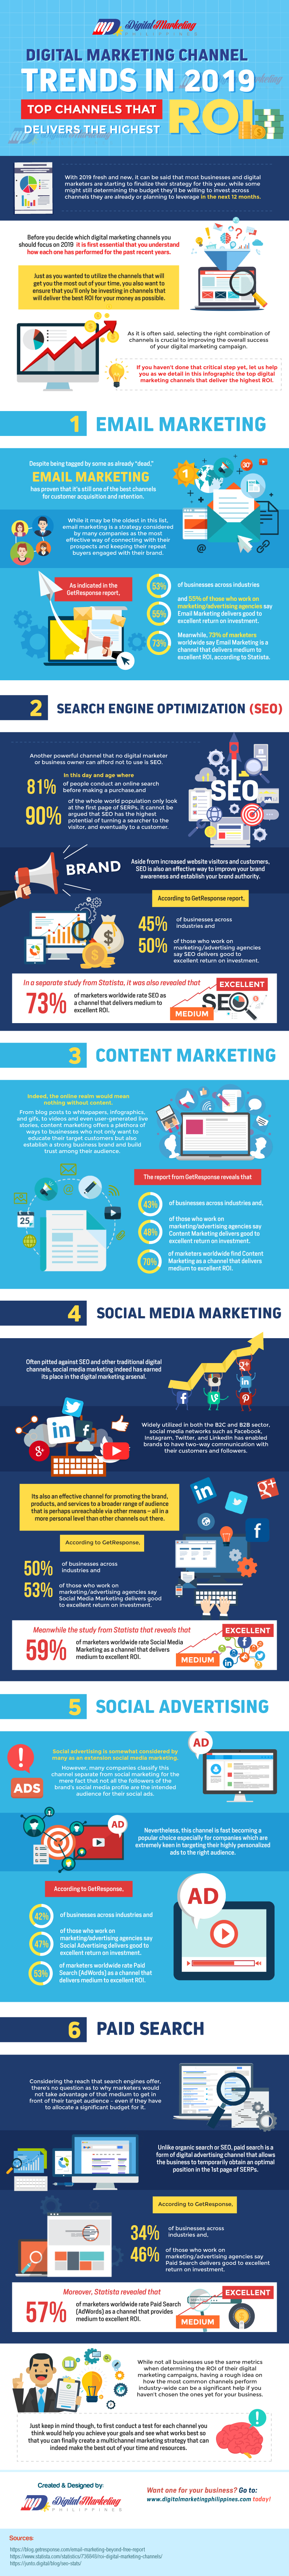 Digital_Marketing_Channel_Trends_in_2019